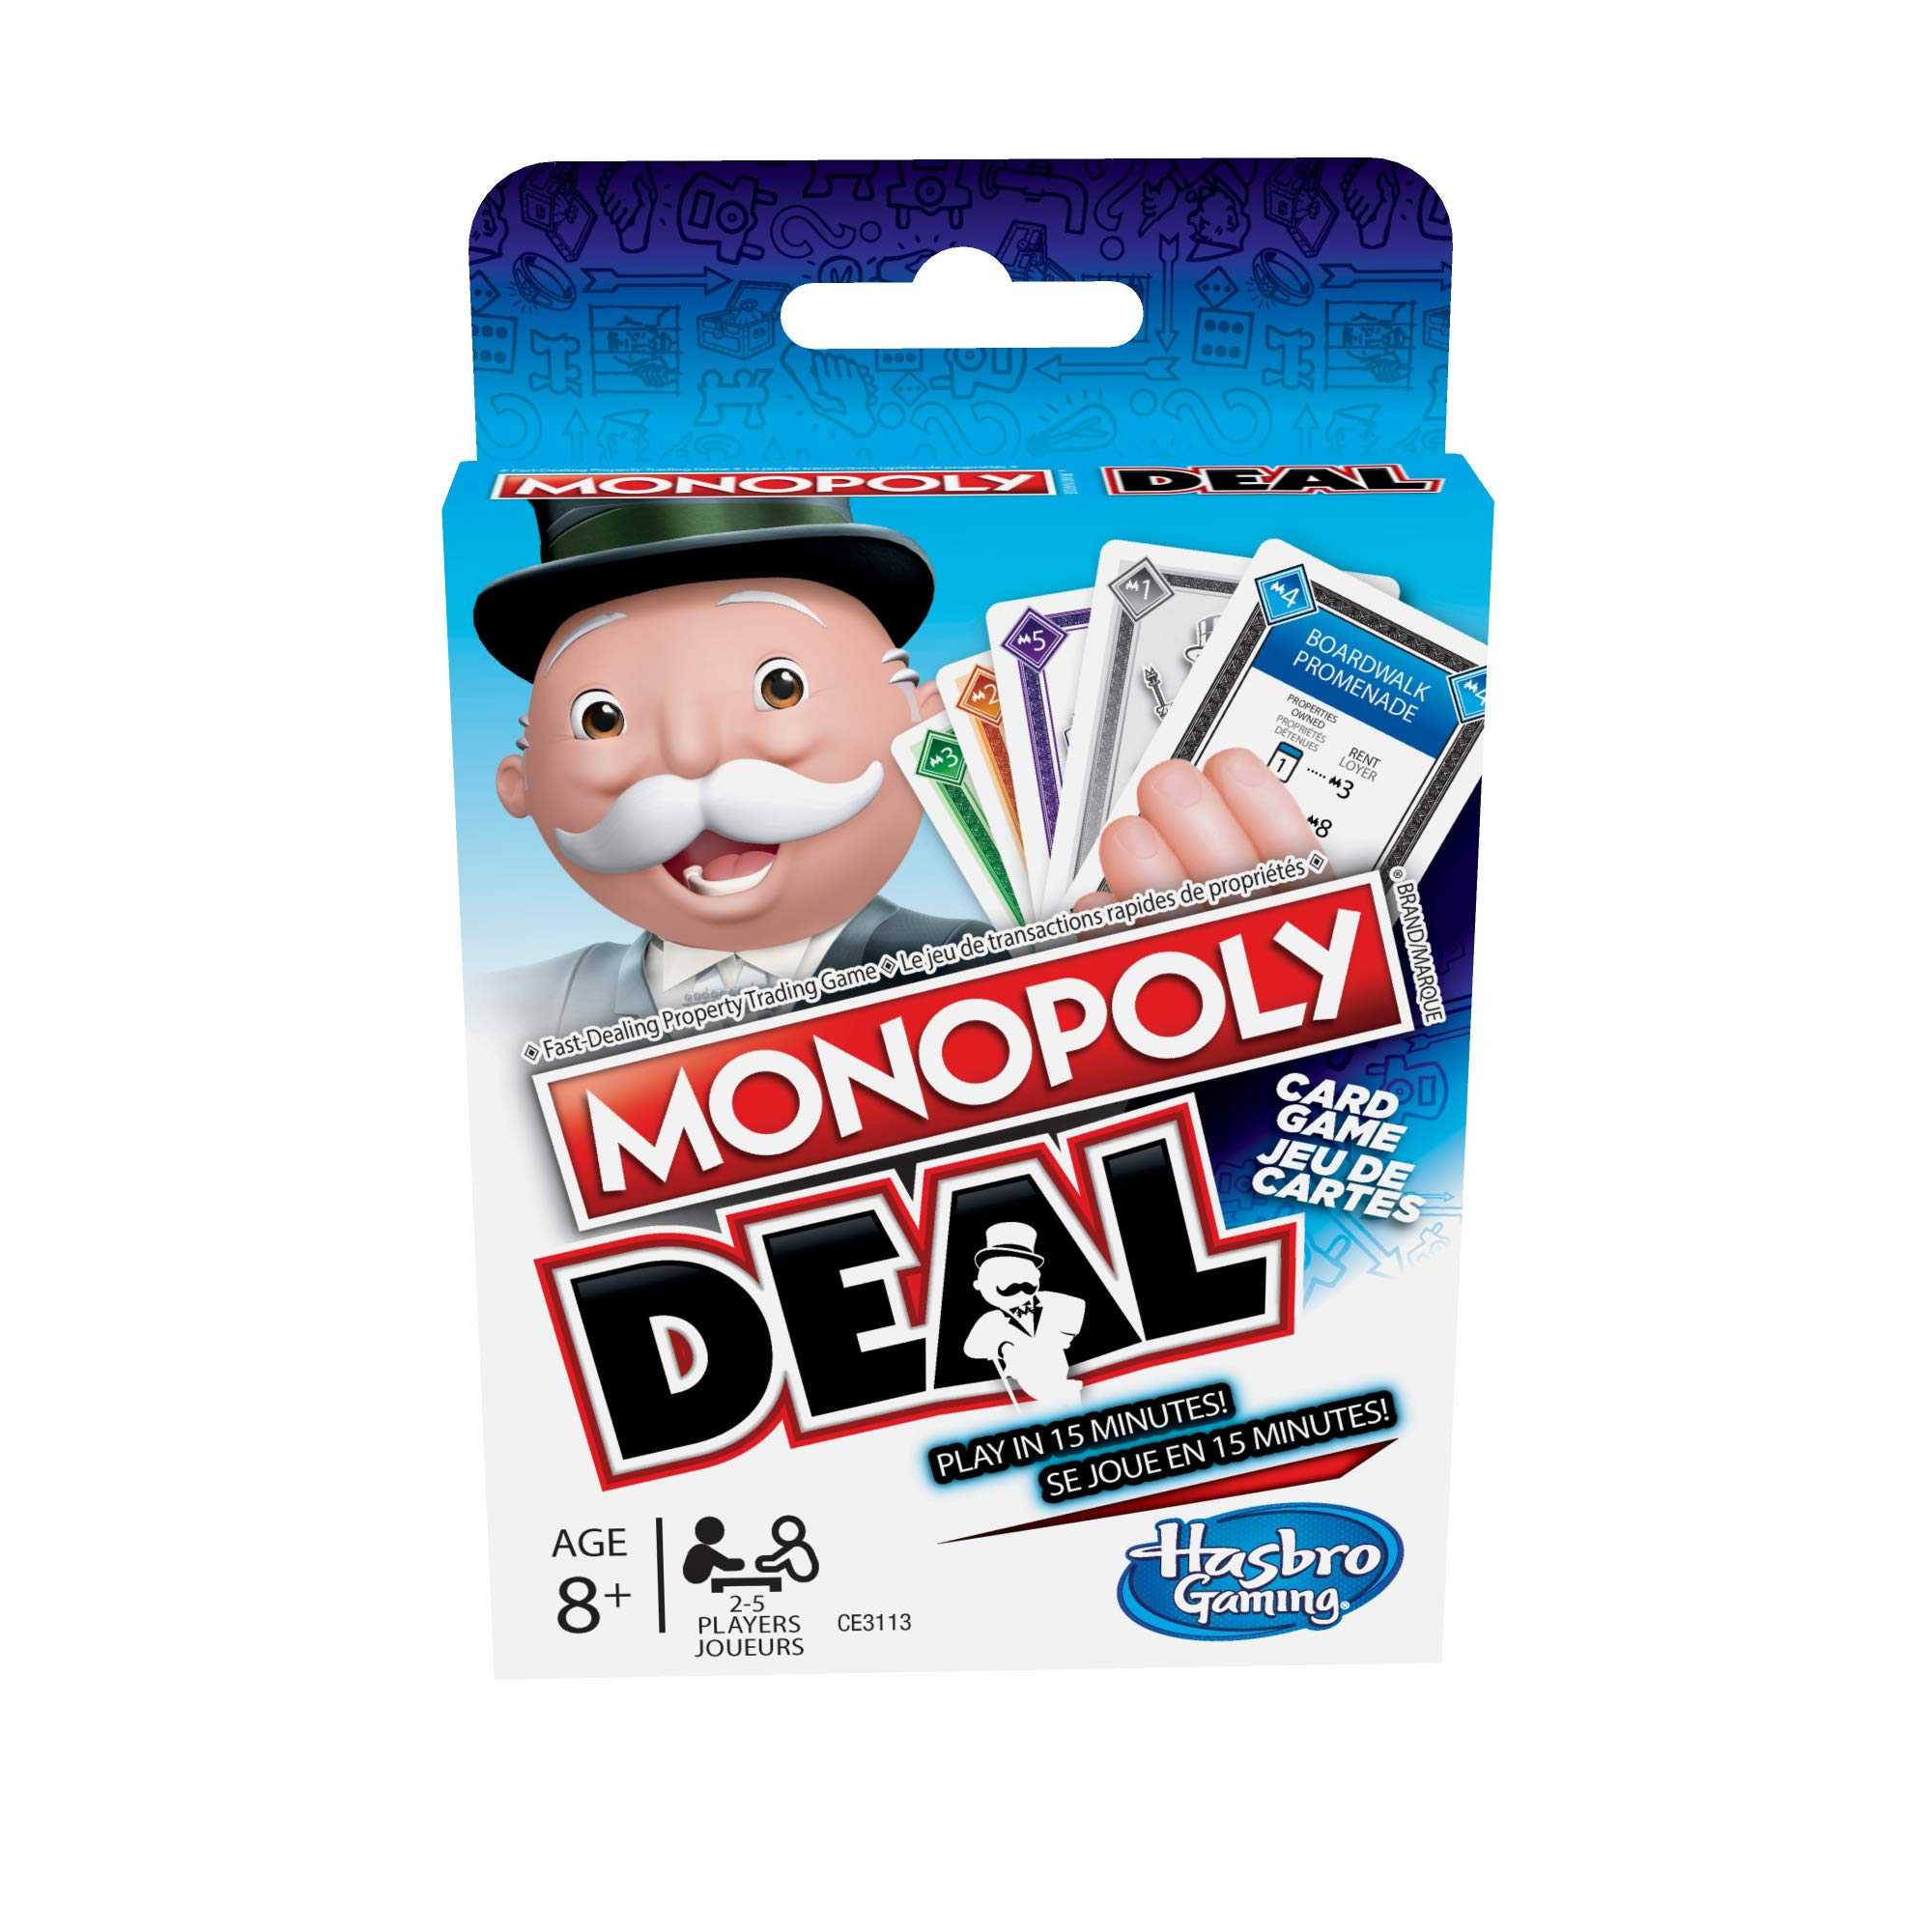 Monopoly Deal Card Game product image